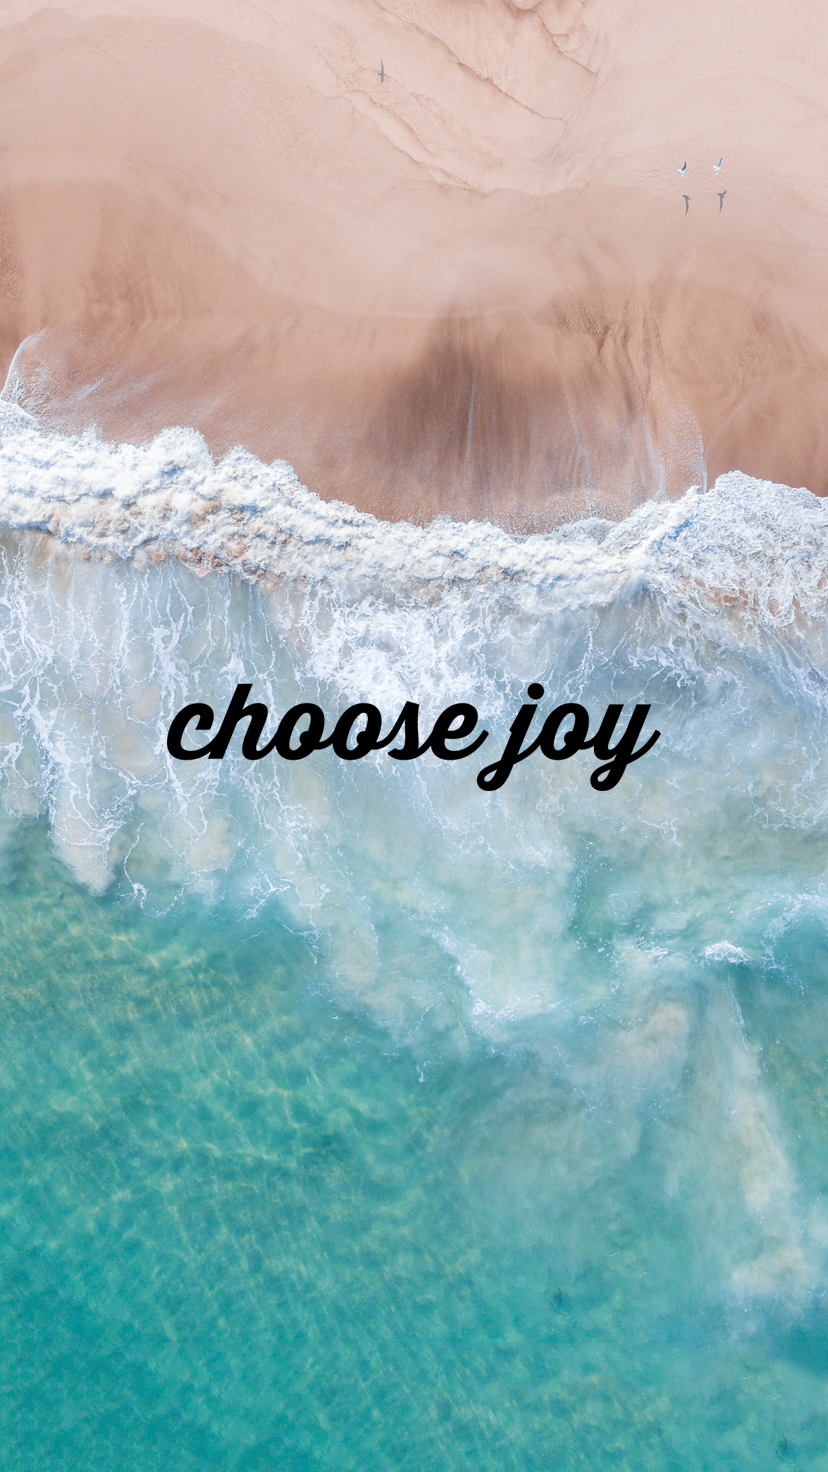 Choose-Joy-iPhone-Wallpaper.png